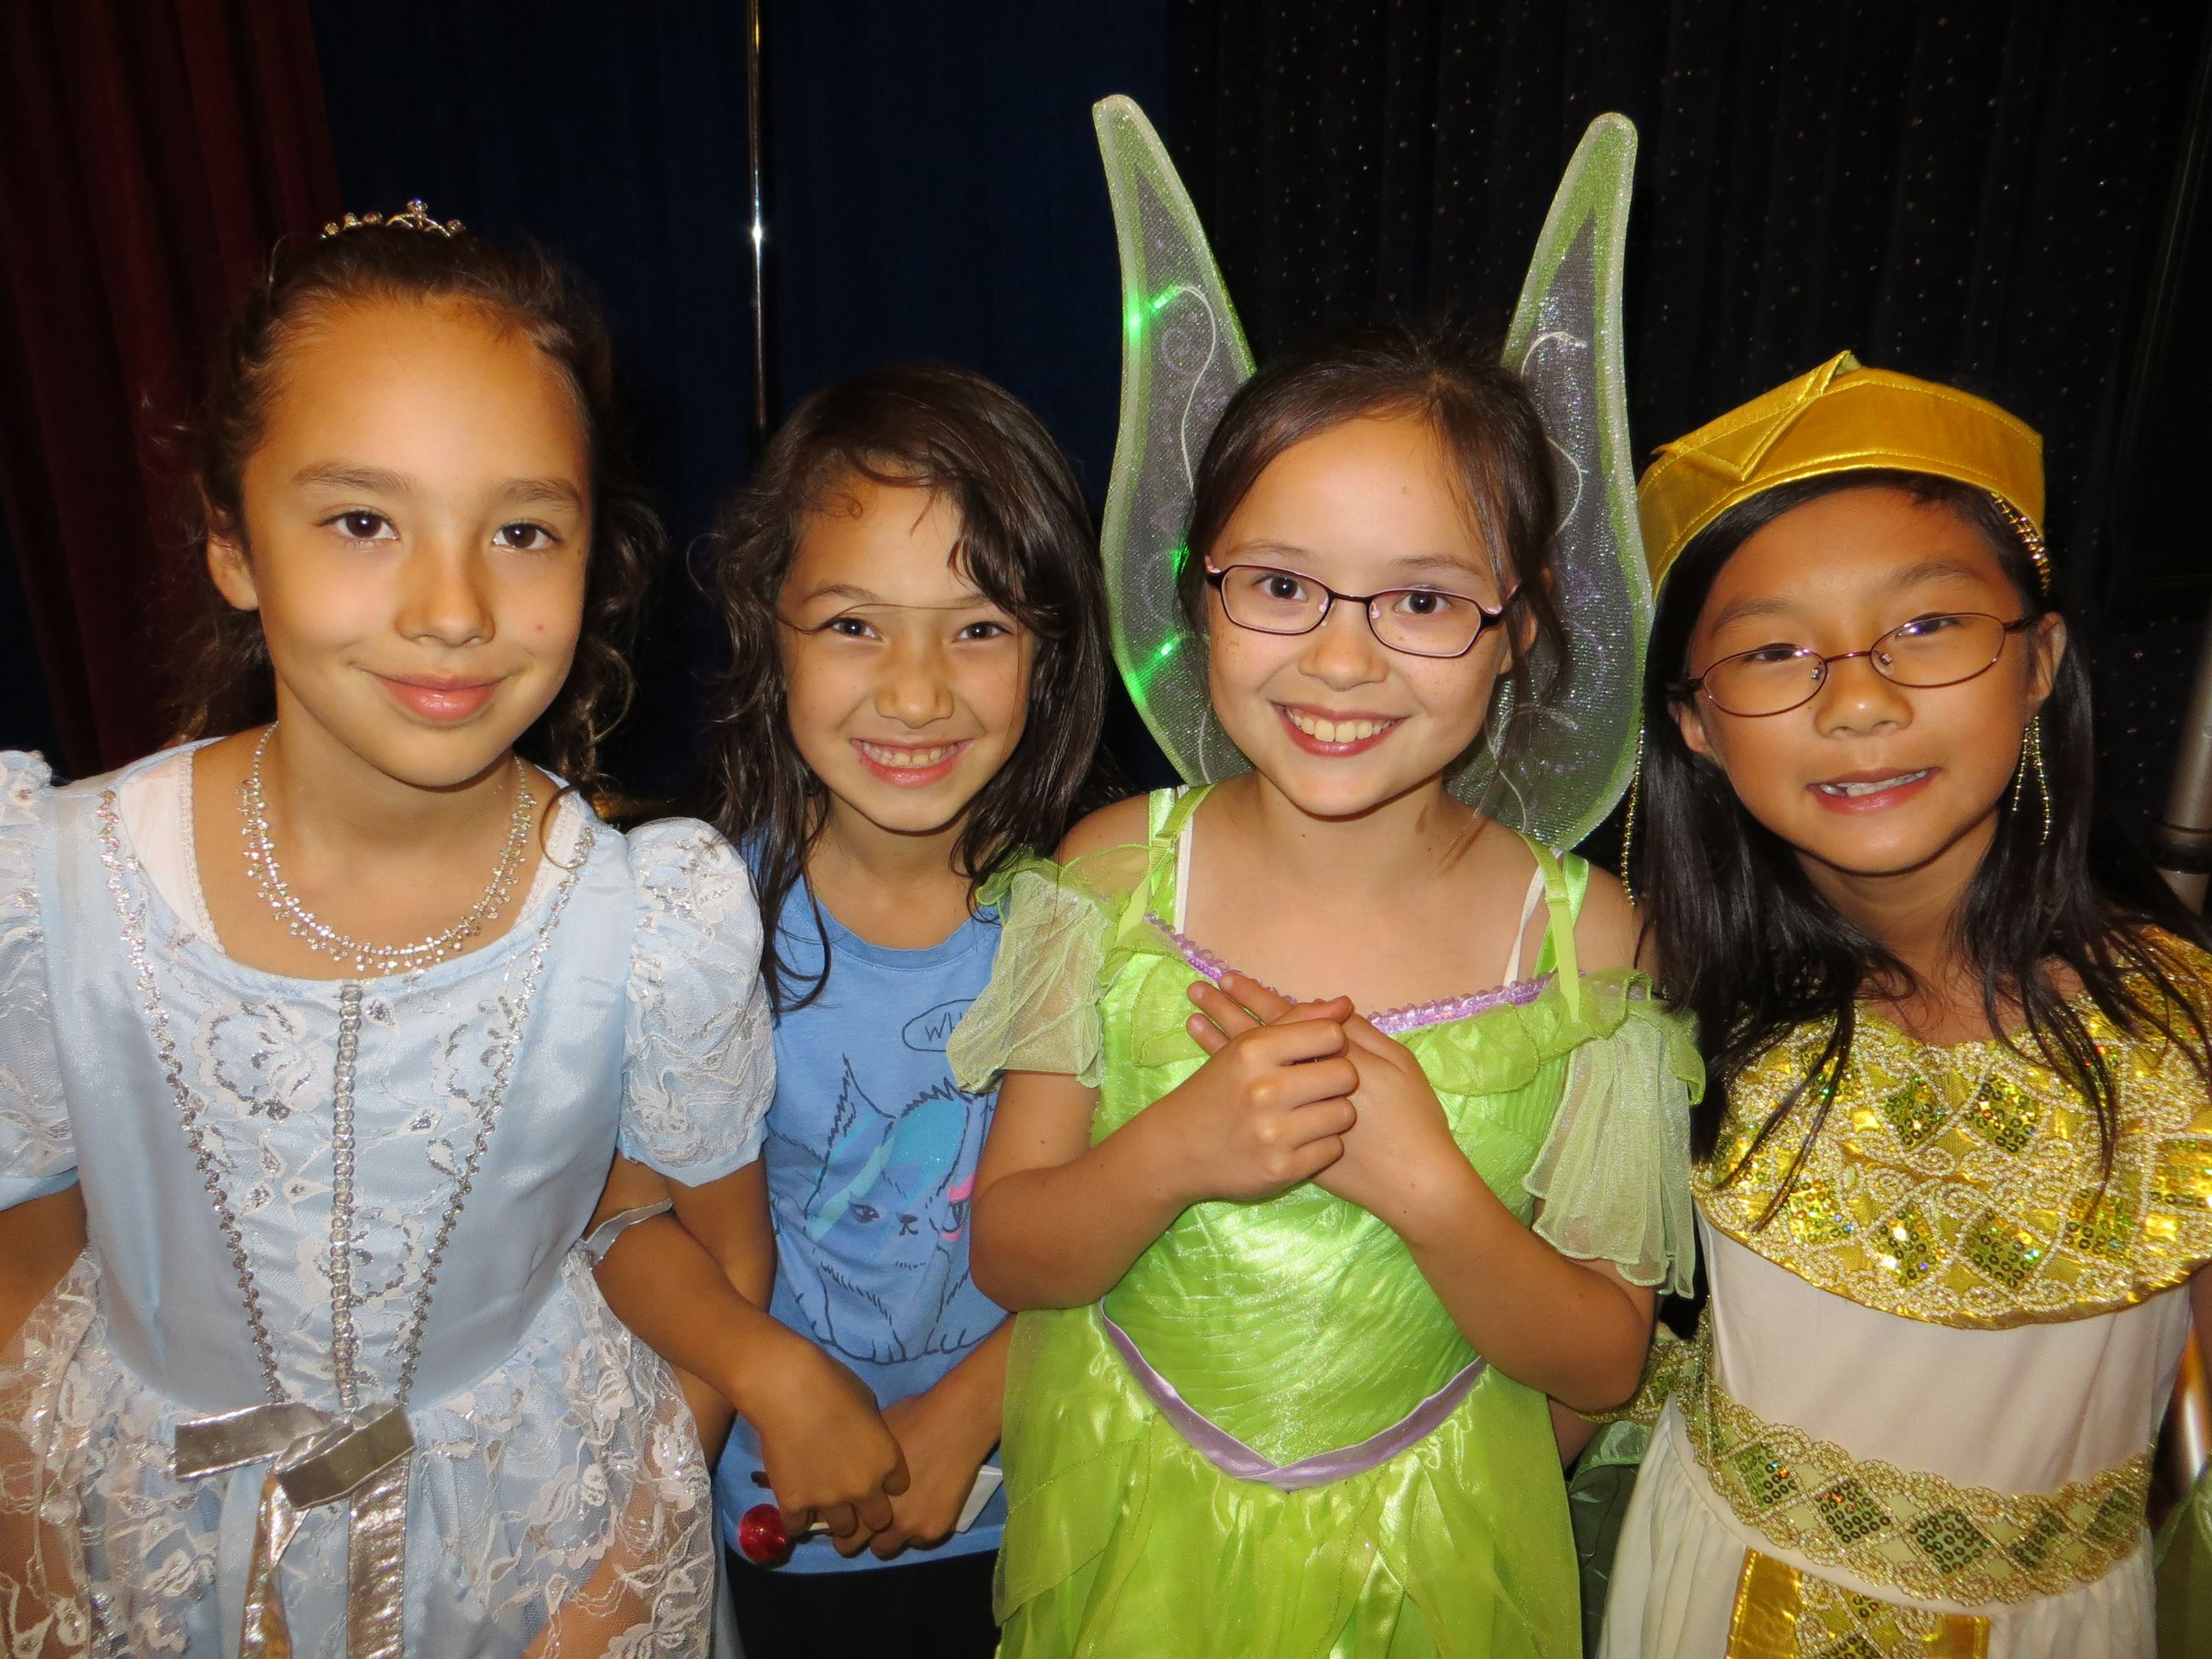 Four girls in fairy costumes